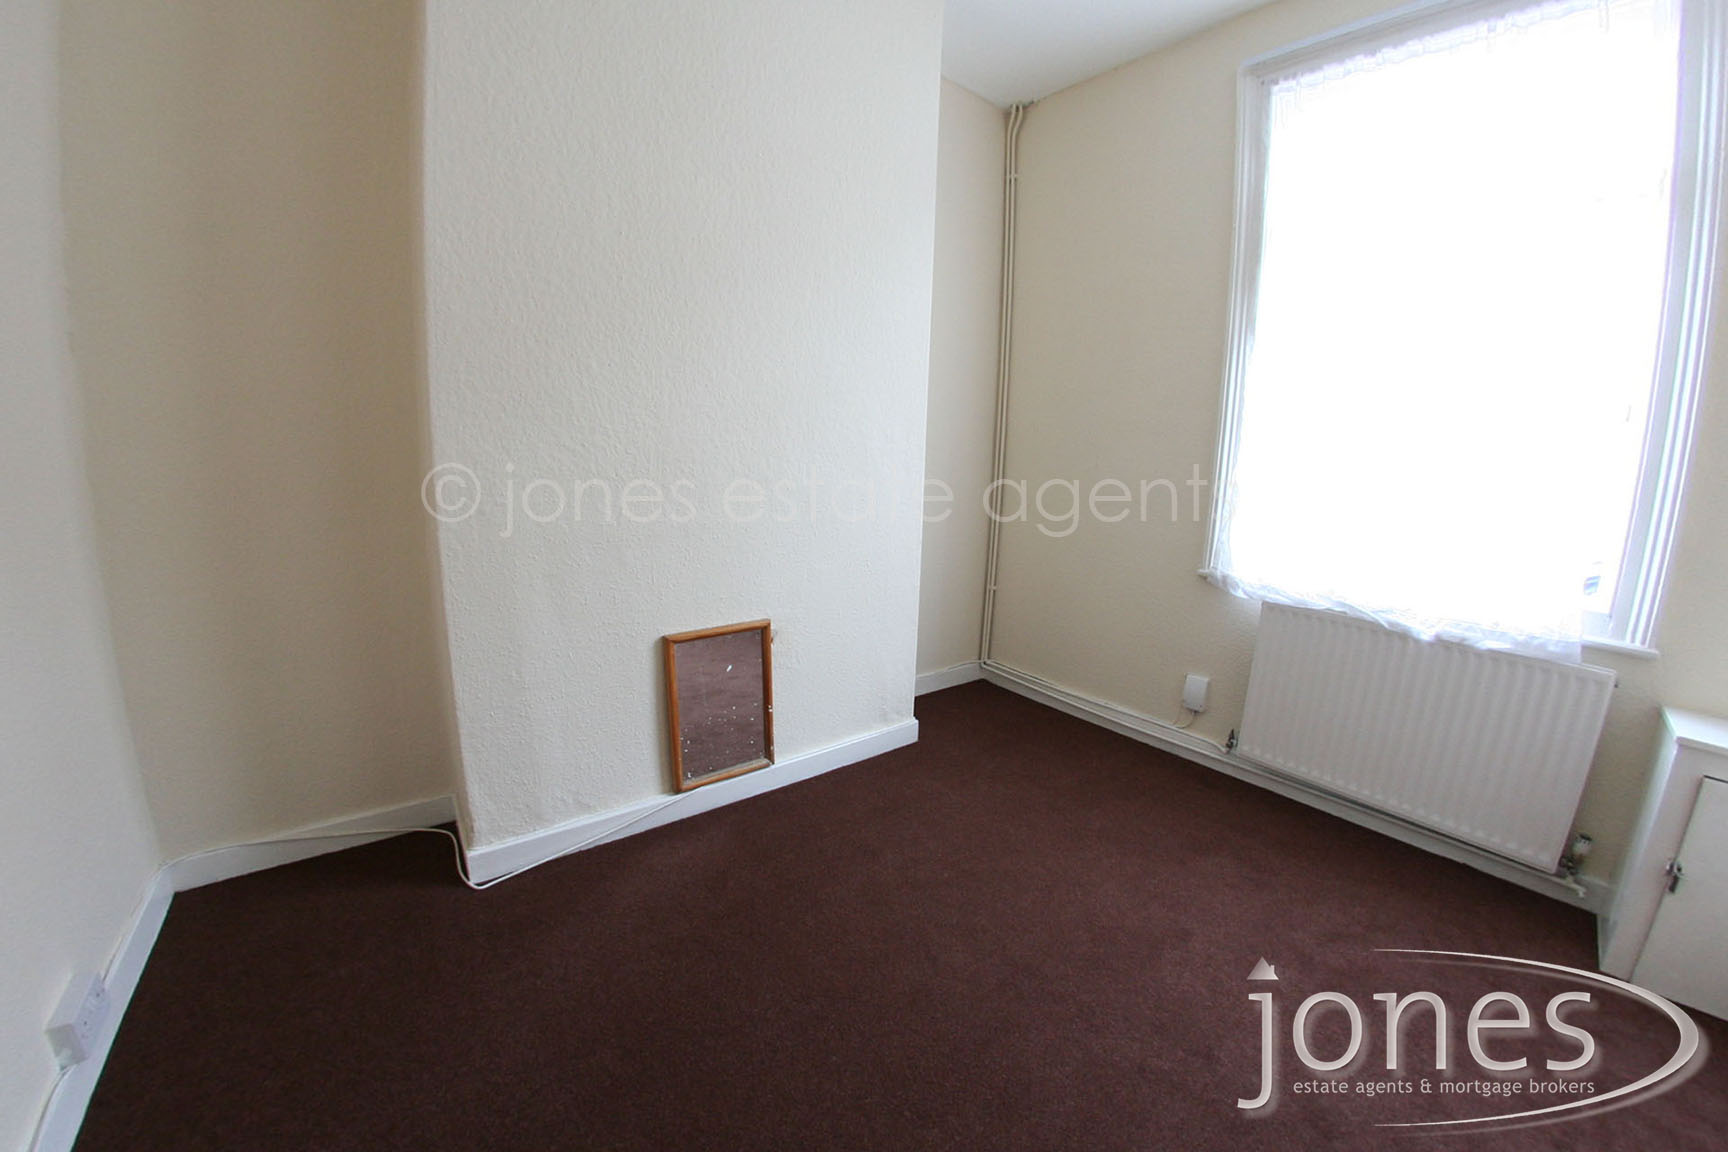 Home for Sale Let - Photo 03 Percy Street,  Middlesbrough, TS1 4DD